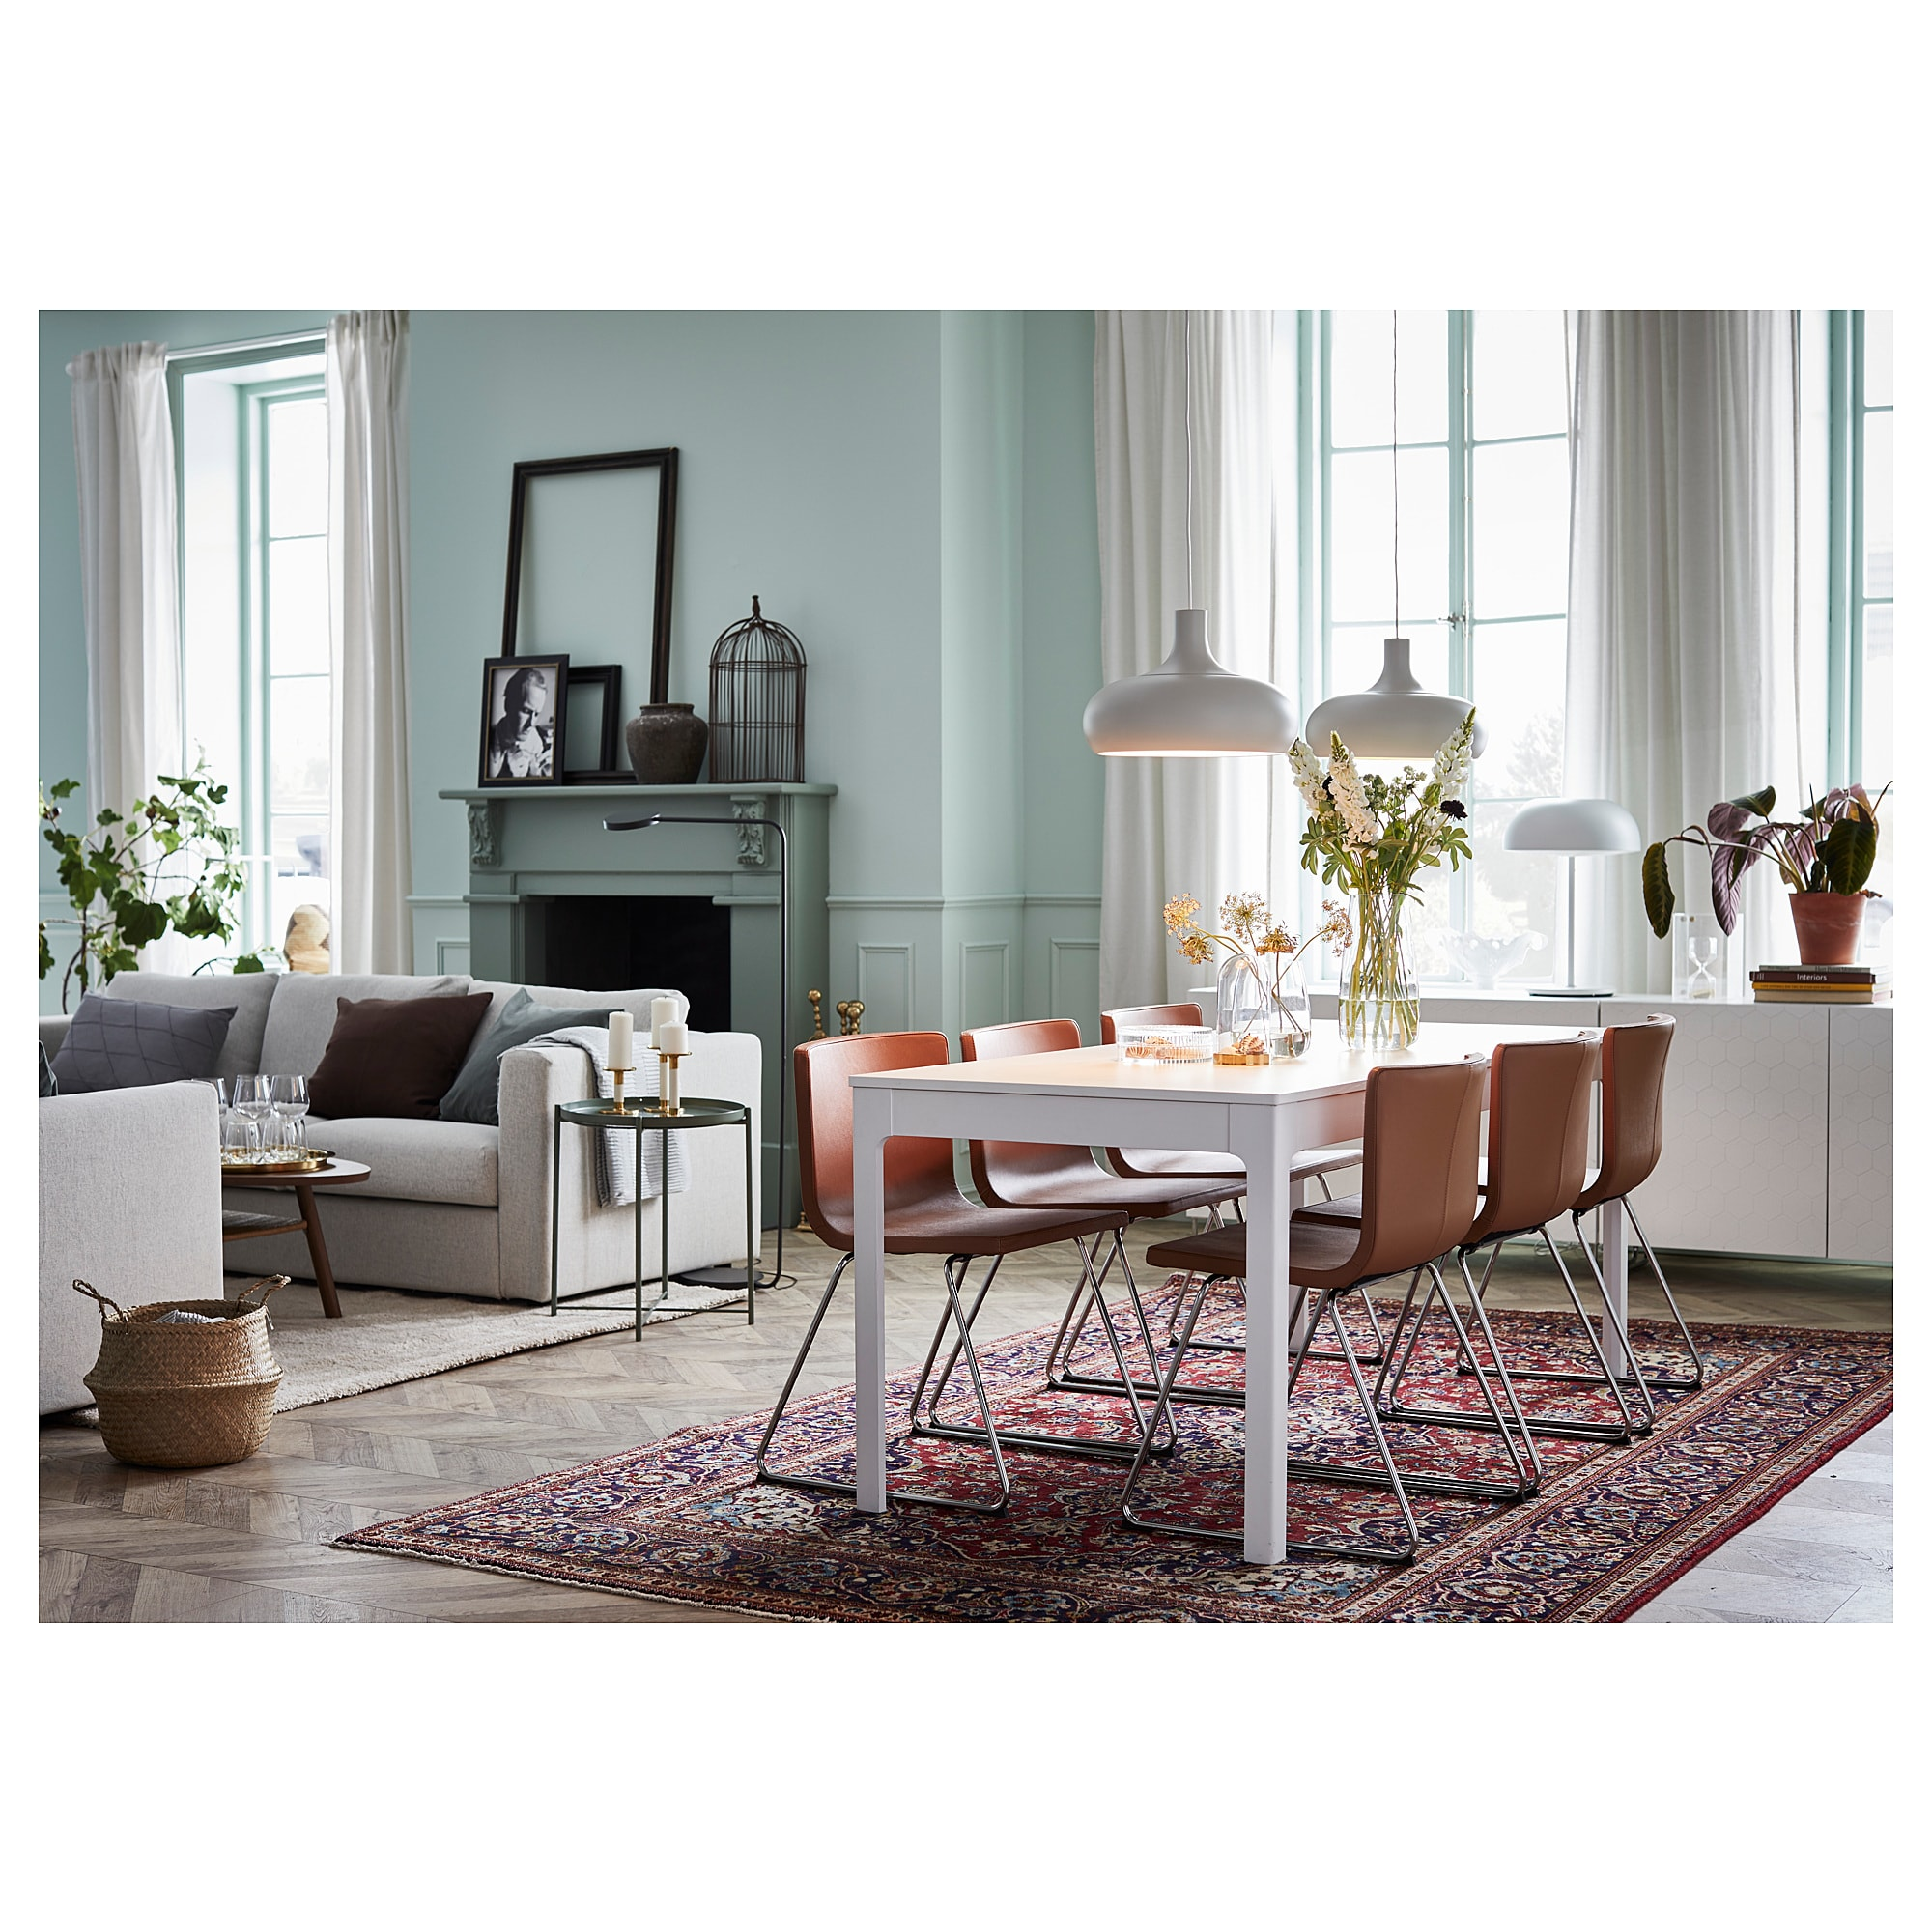 Ekedalen Extendable Table White Min Length 70 7 8 Ikea Dining Room Furniture Modern Dining Room Dining Table